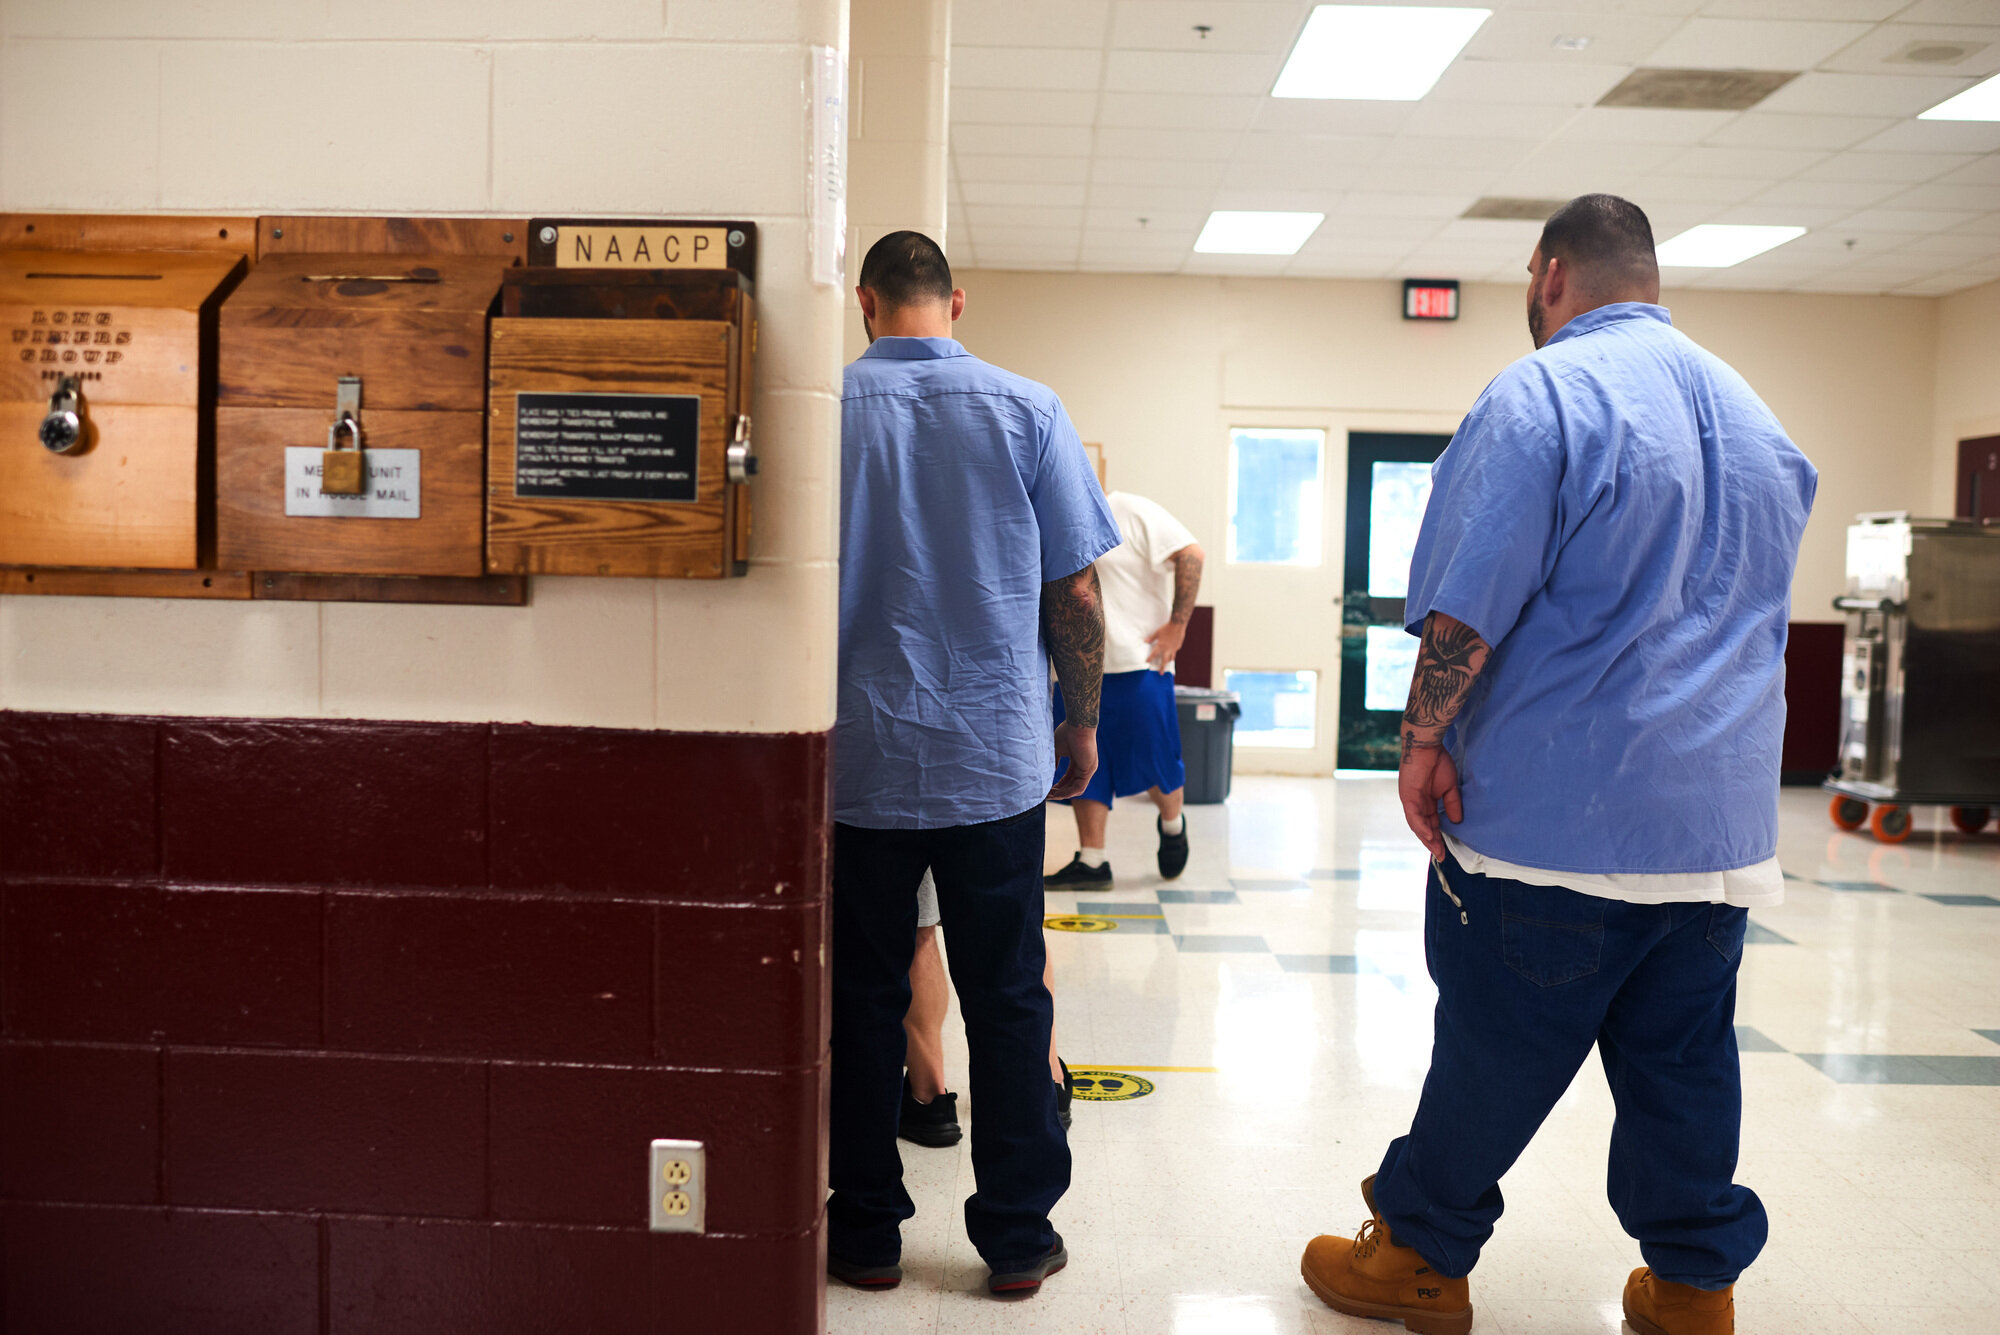 People incarcerated at Maine State Prison wait in the 6:30 a.m. med line on July 28, during which some receive methadone or buprenorphine to combat opioid addiction.